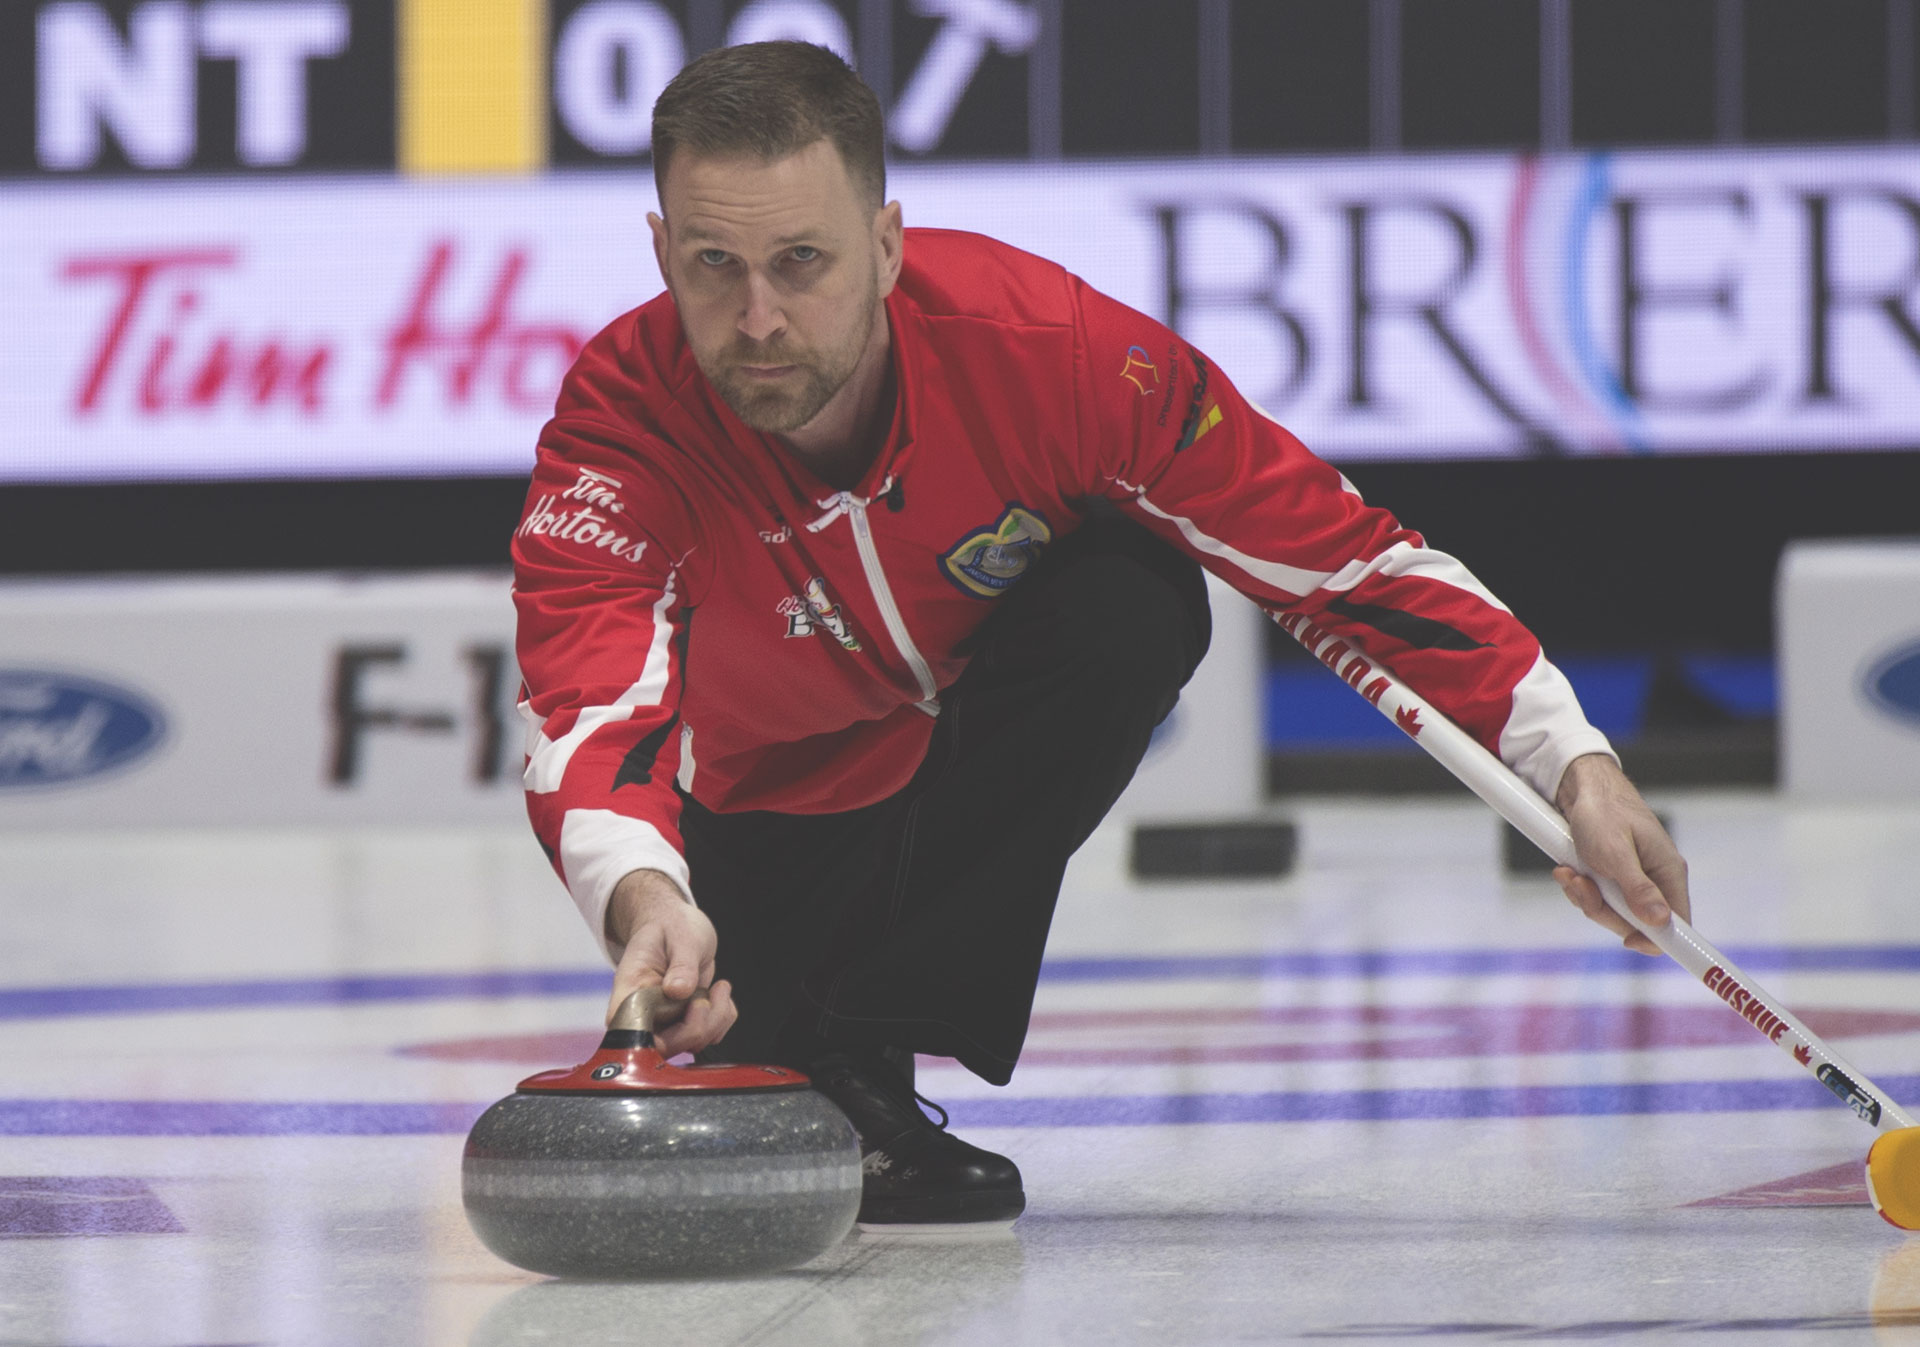 Brad Gushue at the Time Hortons Brier (Photo credit: Curling Canada/Michael Burns).